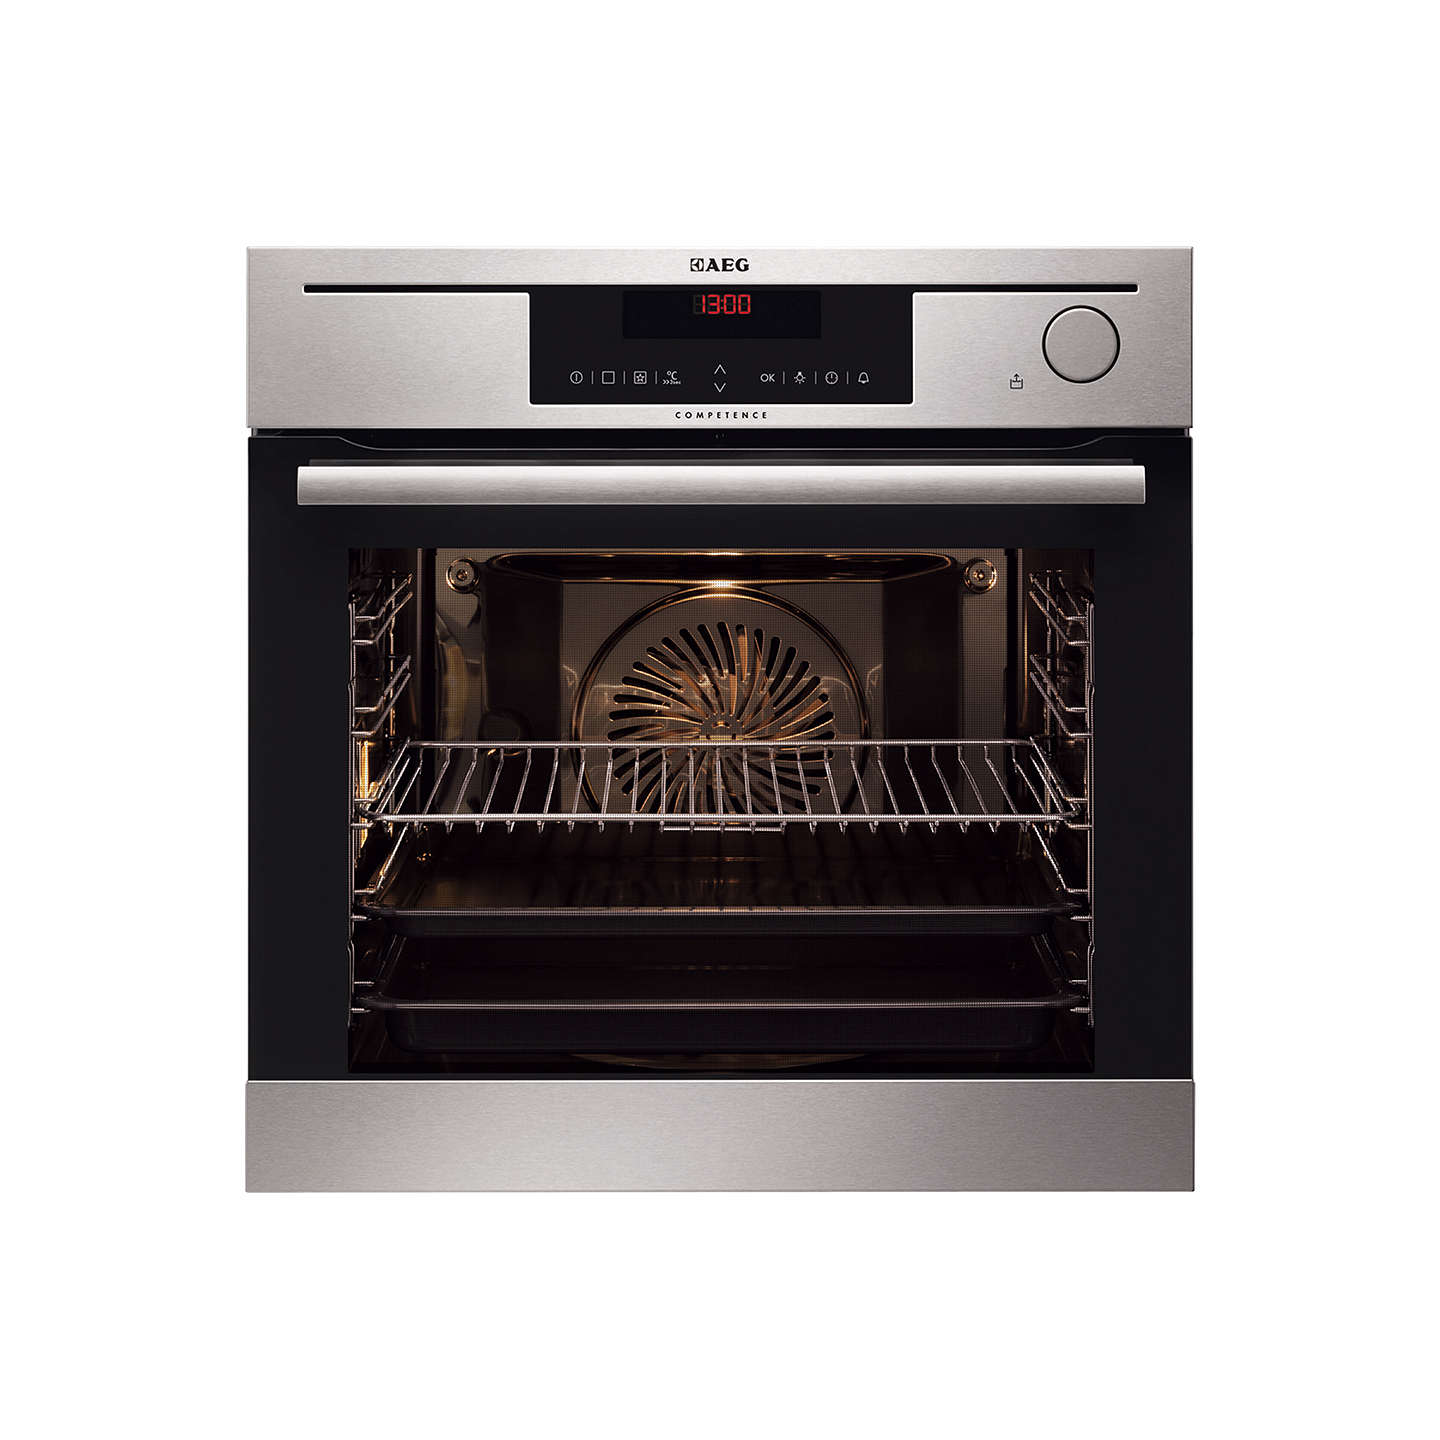 Buyaeg Bs7304021M Built In Procombi Steam Single Electric Oven, Stainless Steel